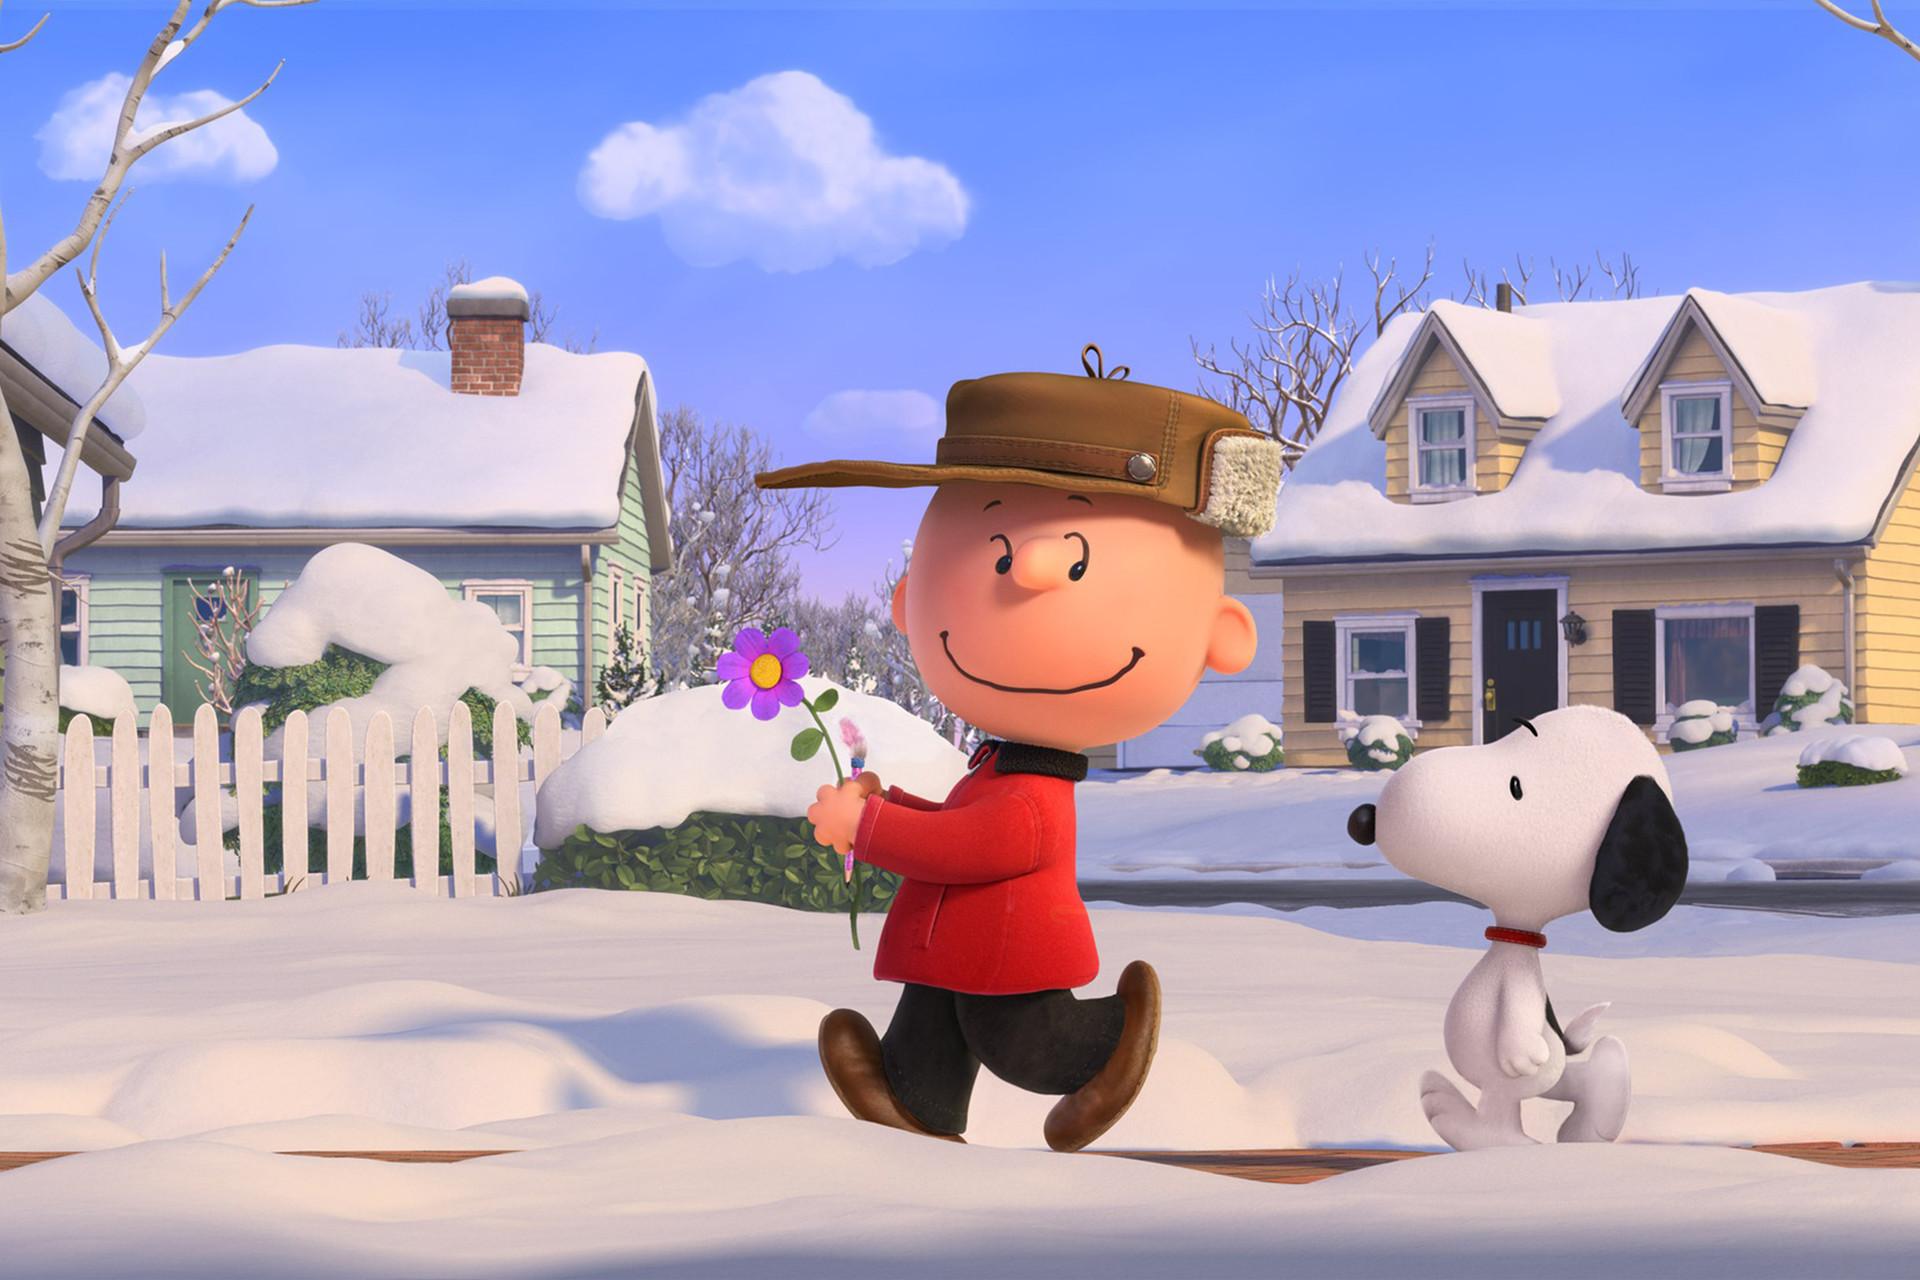 Snoopy and Charlie Brown in winter – wallpaper